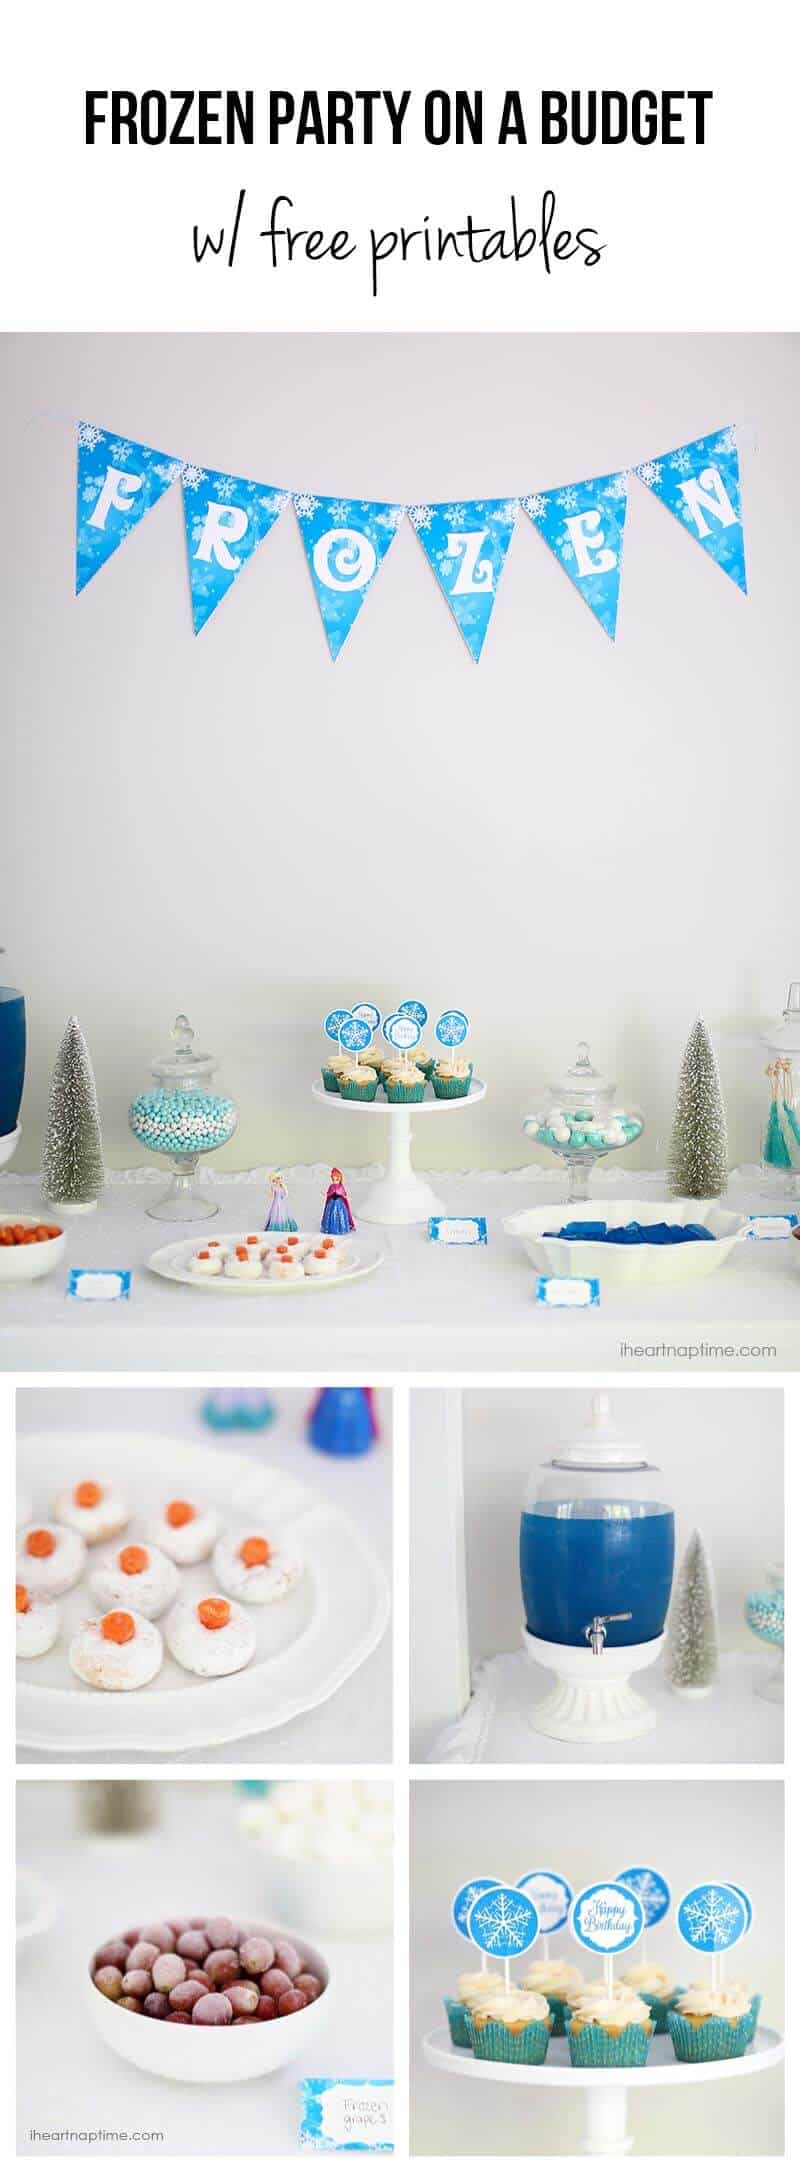 http://www.iheartnaptime.net/wp-content/uploads/2014/10/Frozen-party-ideas.jpg